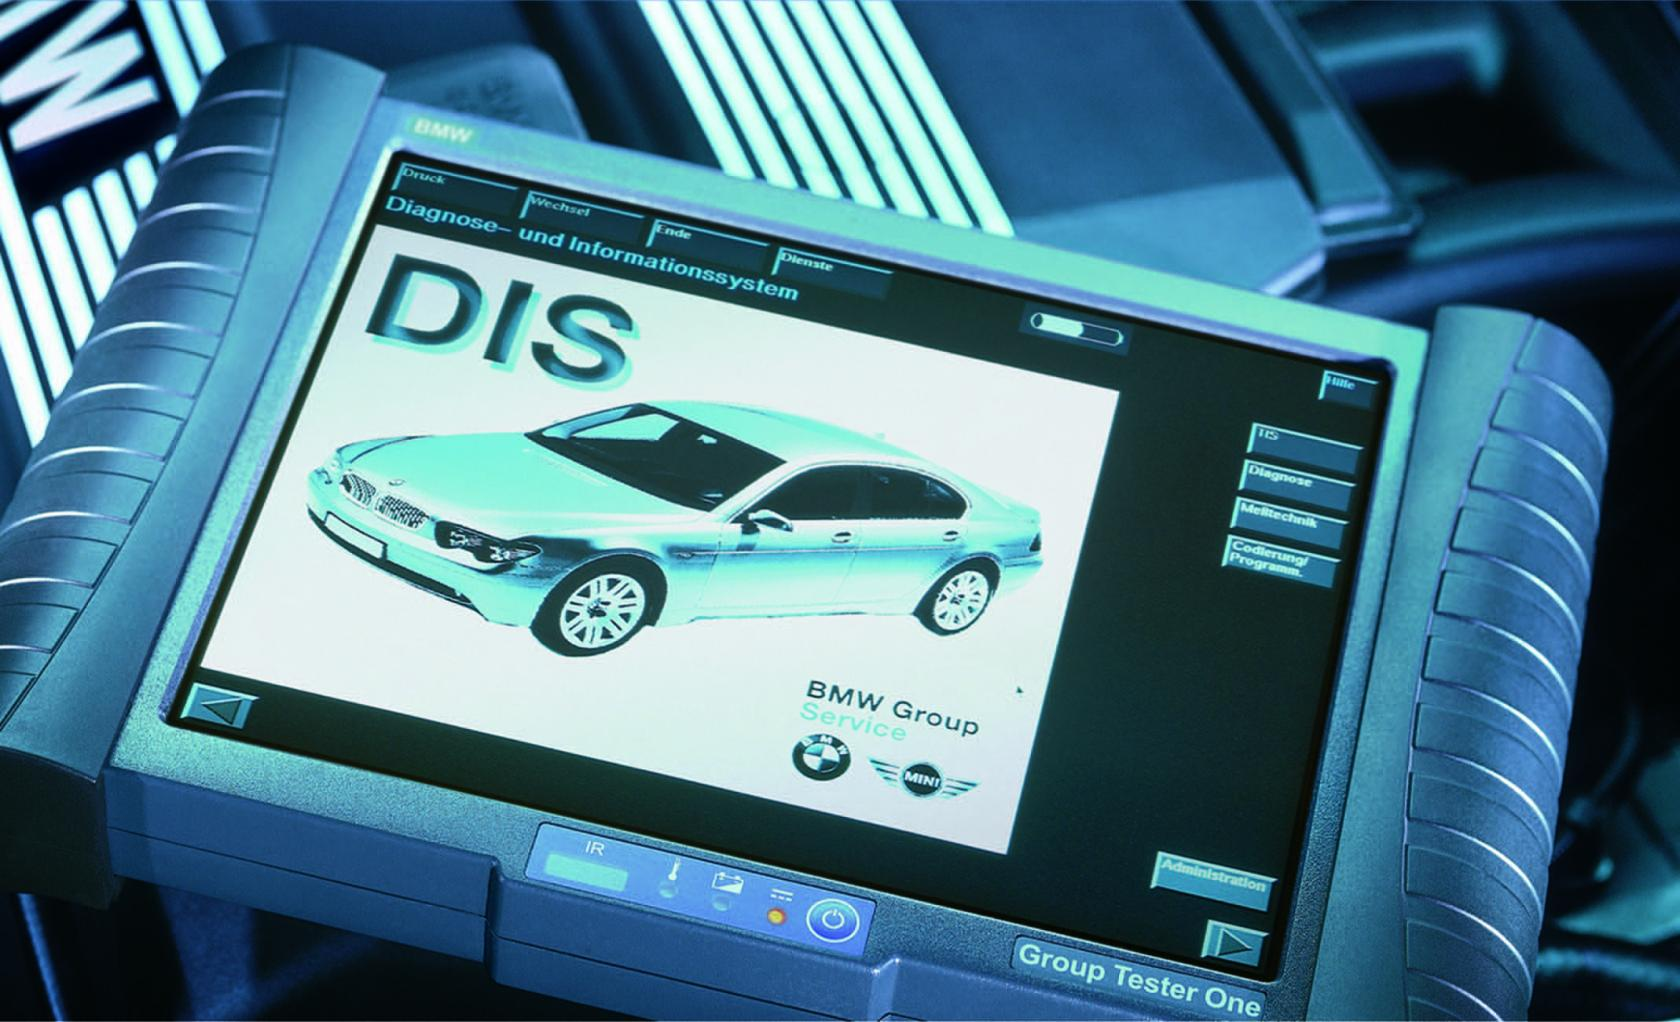 Interface-de-diagnostic-BMW-DIS.jpeg